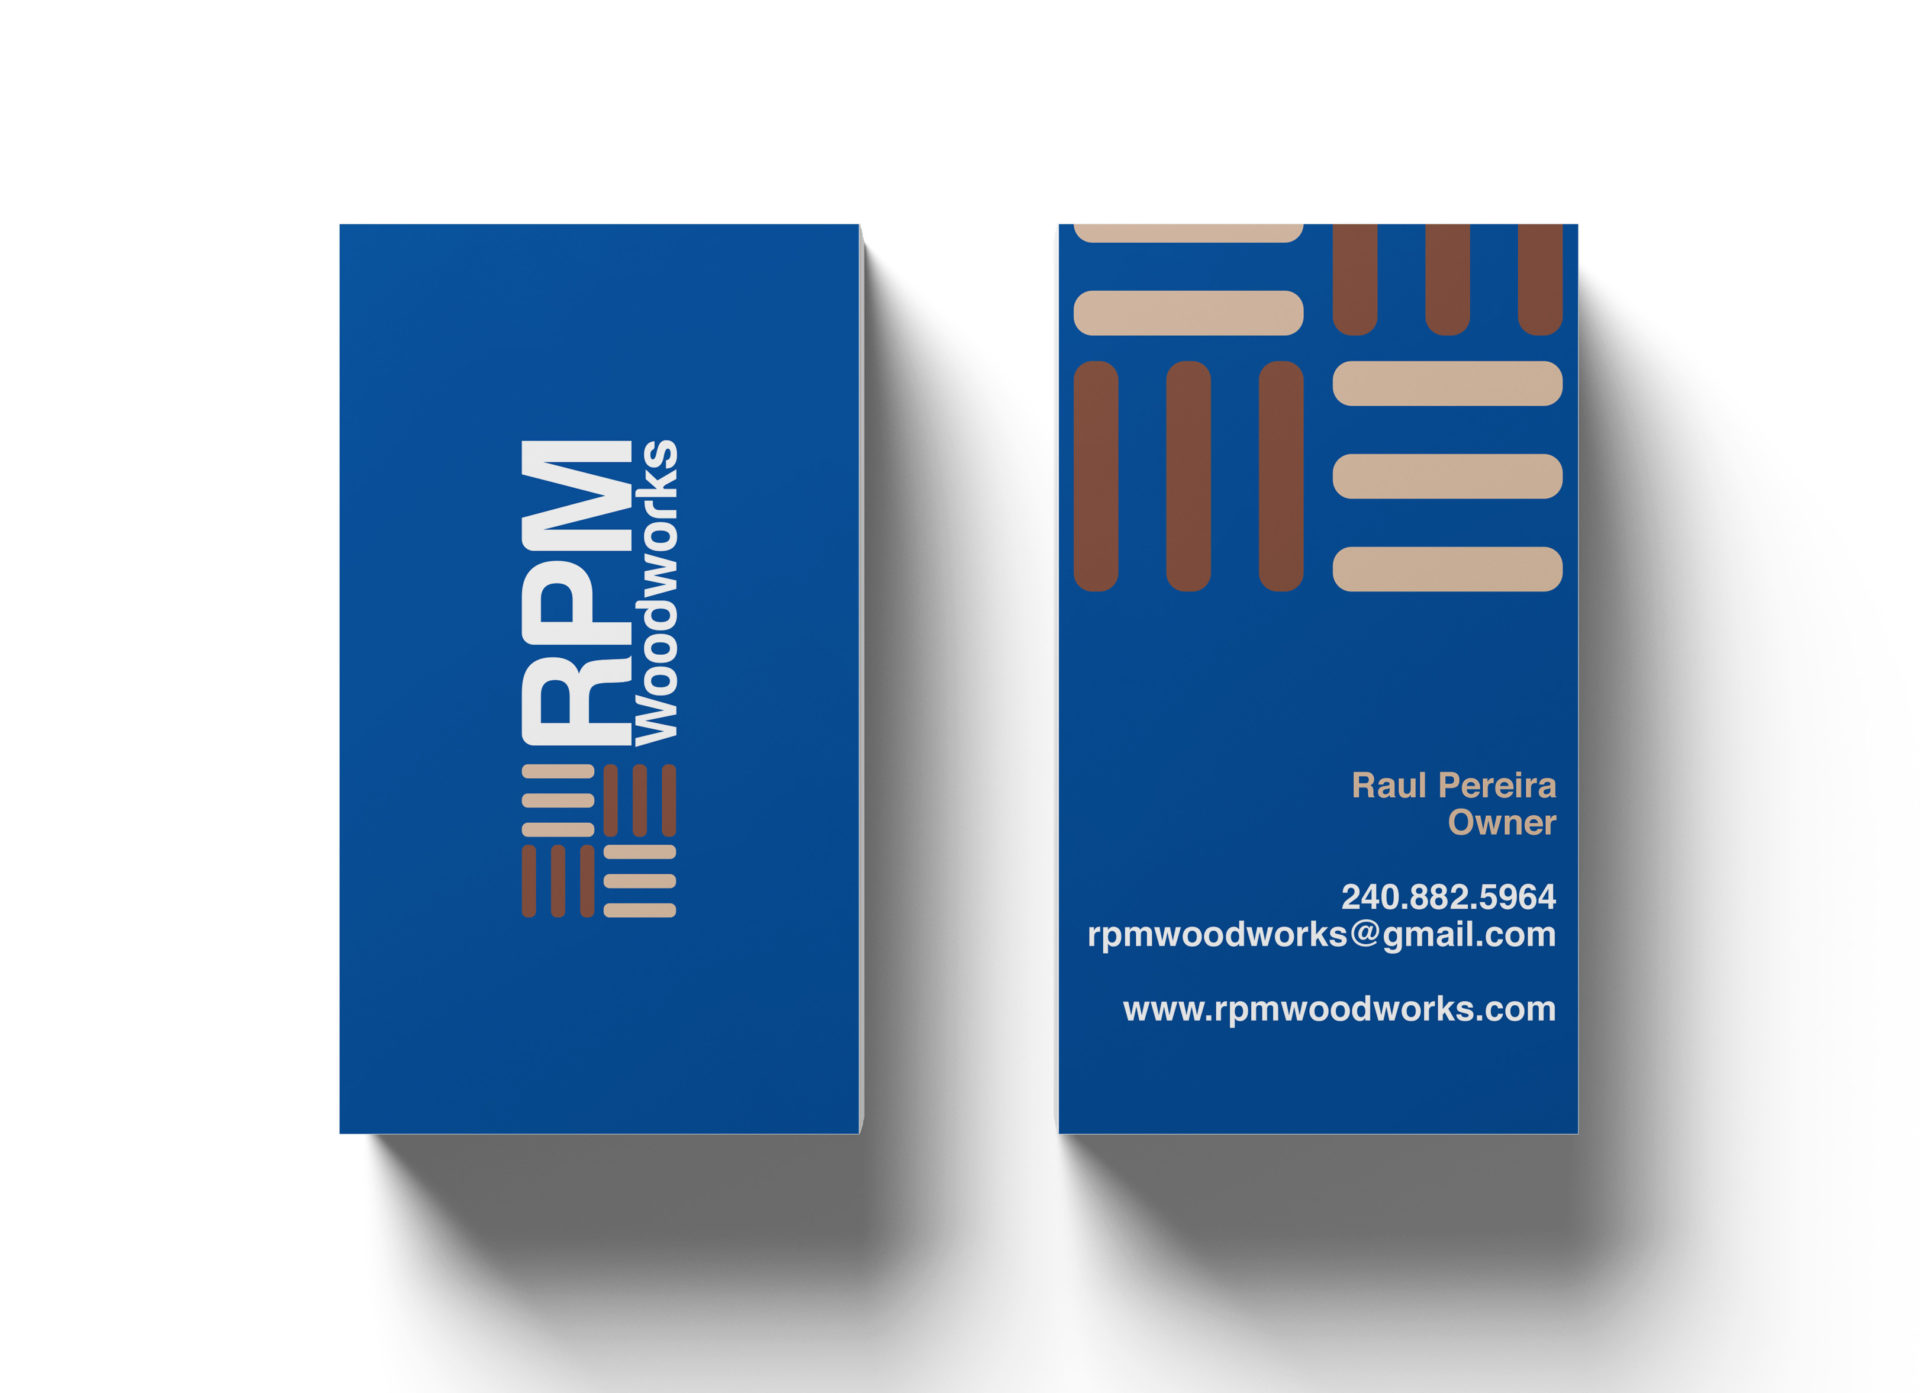 RPM-business card mock